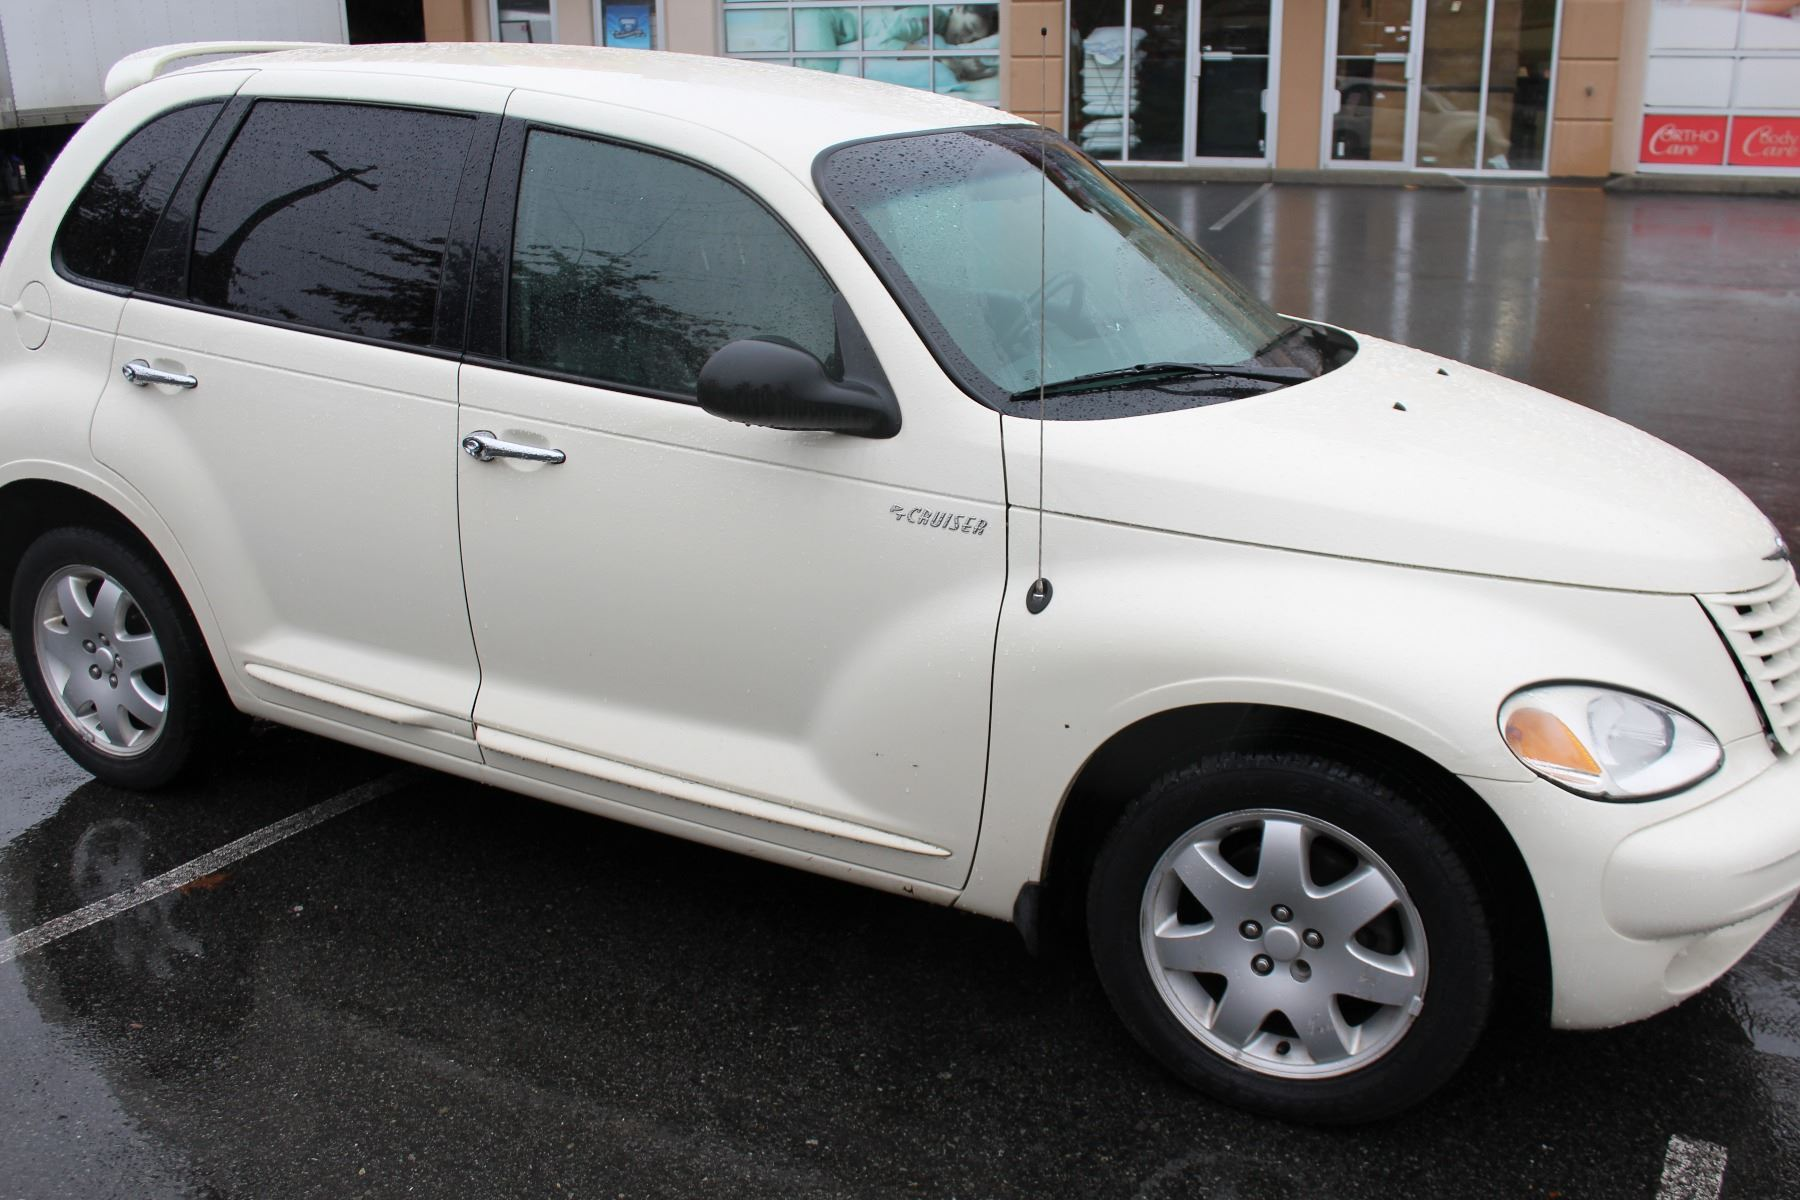 2005 CHRYSLER PT CRUISER, 4 DOOR AUTOMATIC, 160, XXX KM WITH 2 KEYS AND  FOBS,